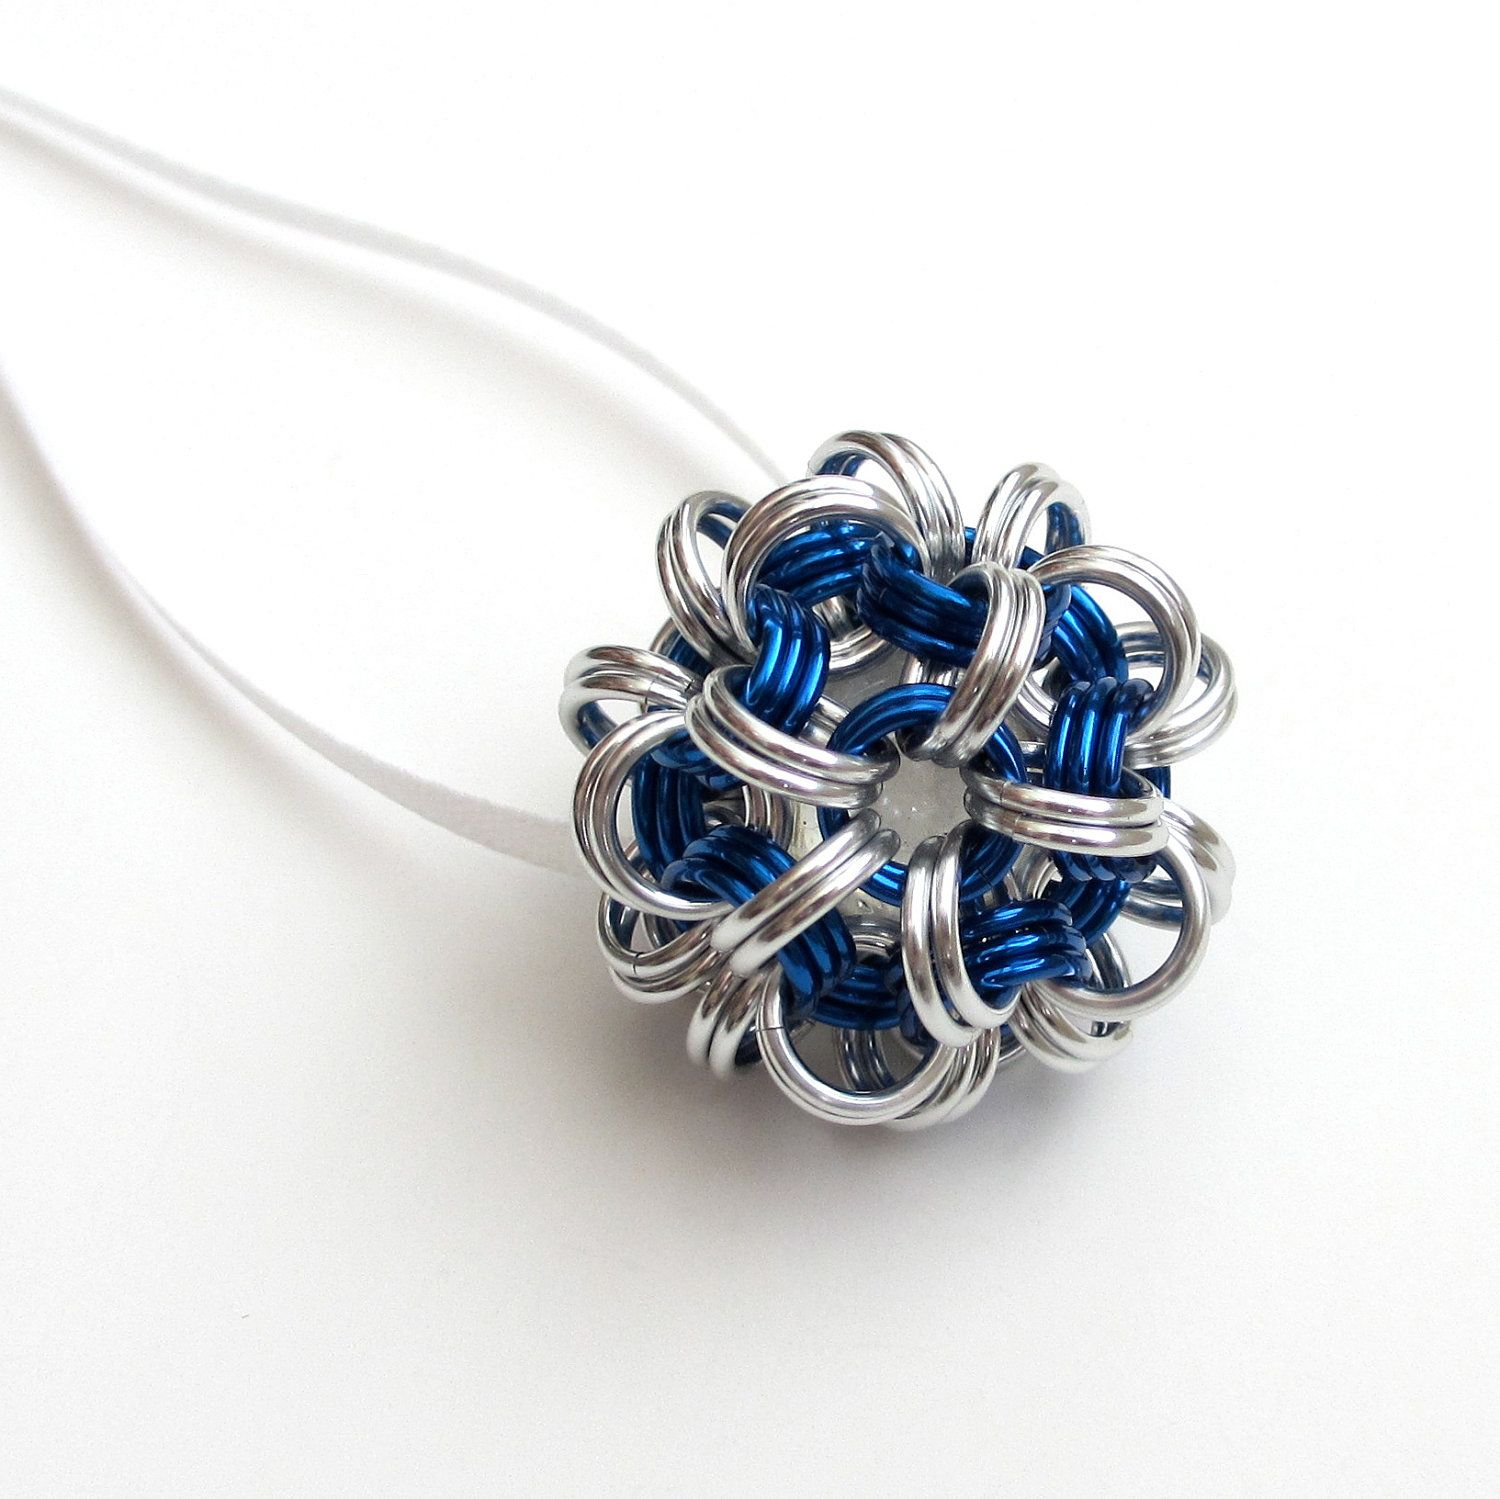 Chainmail Christmas ornament in silver & blue. $20.00, via Etsy.